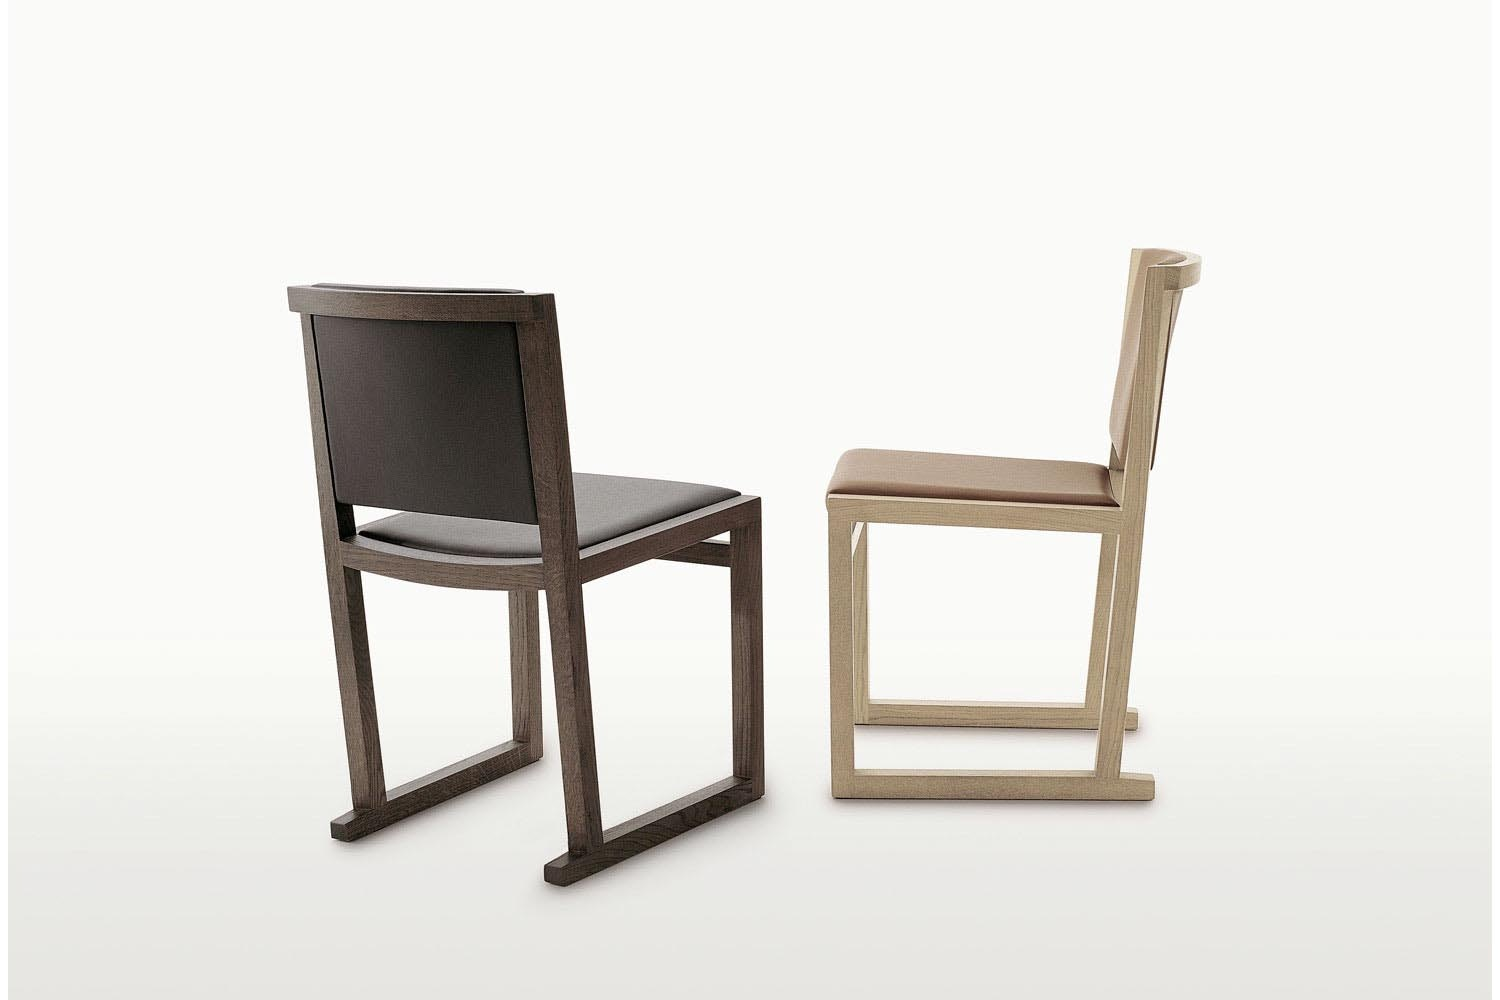 Musa Chair by Antonio Citterio for Maxalto